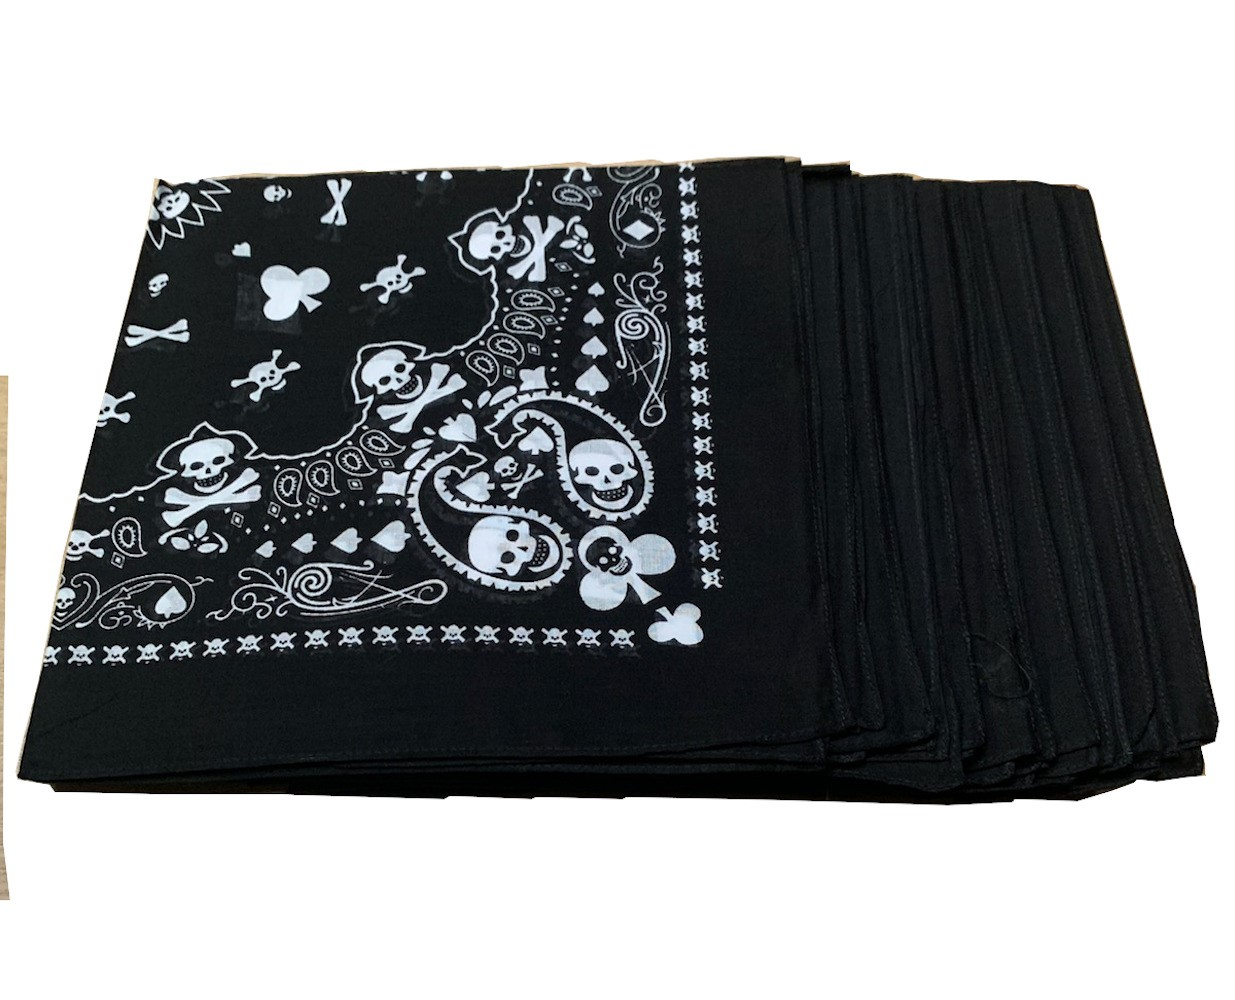 "Playing Card Skull Bandanas 12 Pack - 22"" x 22"""